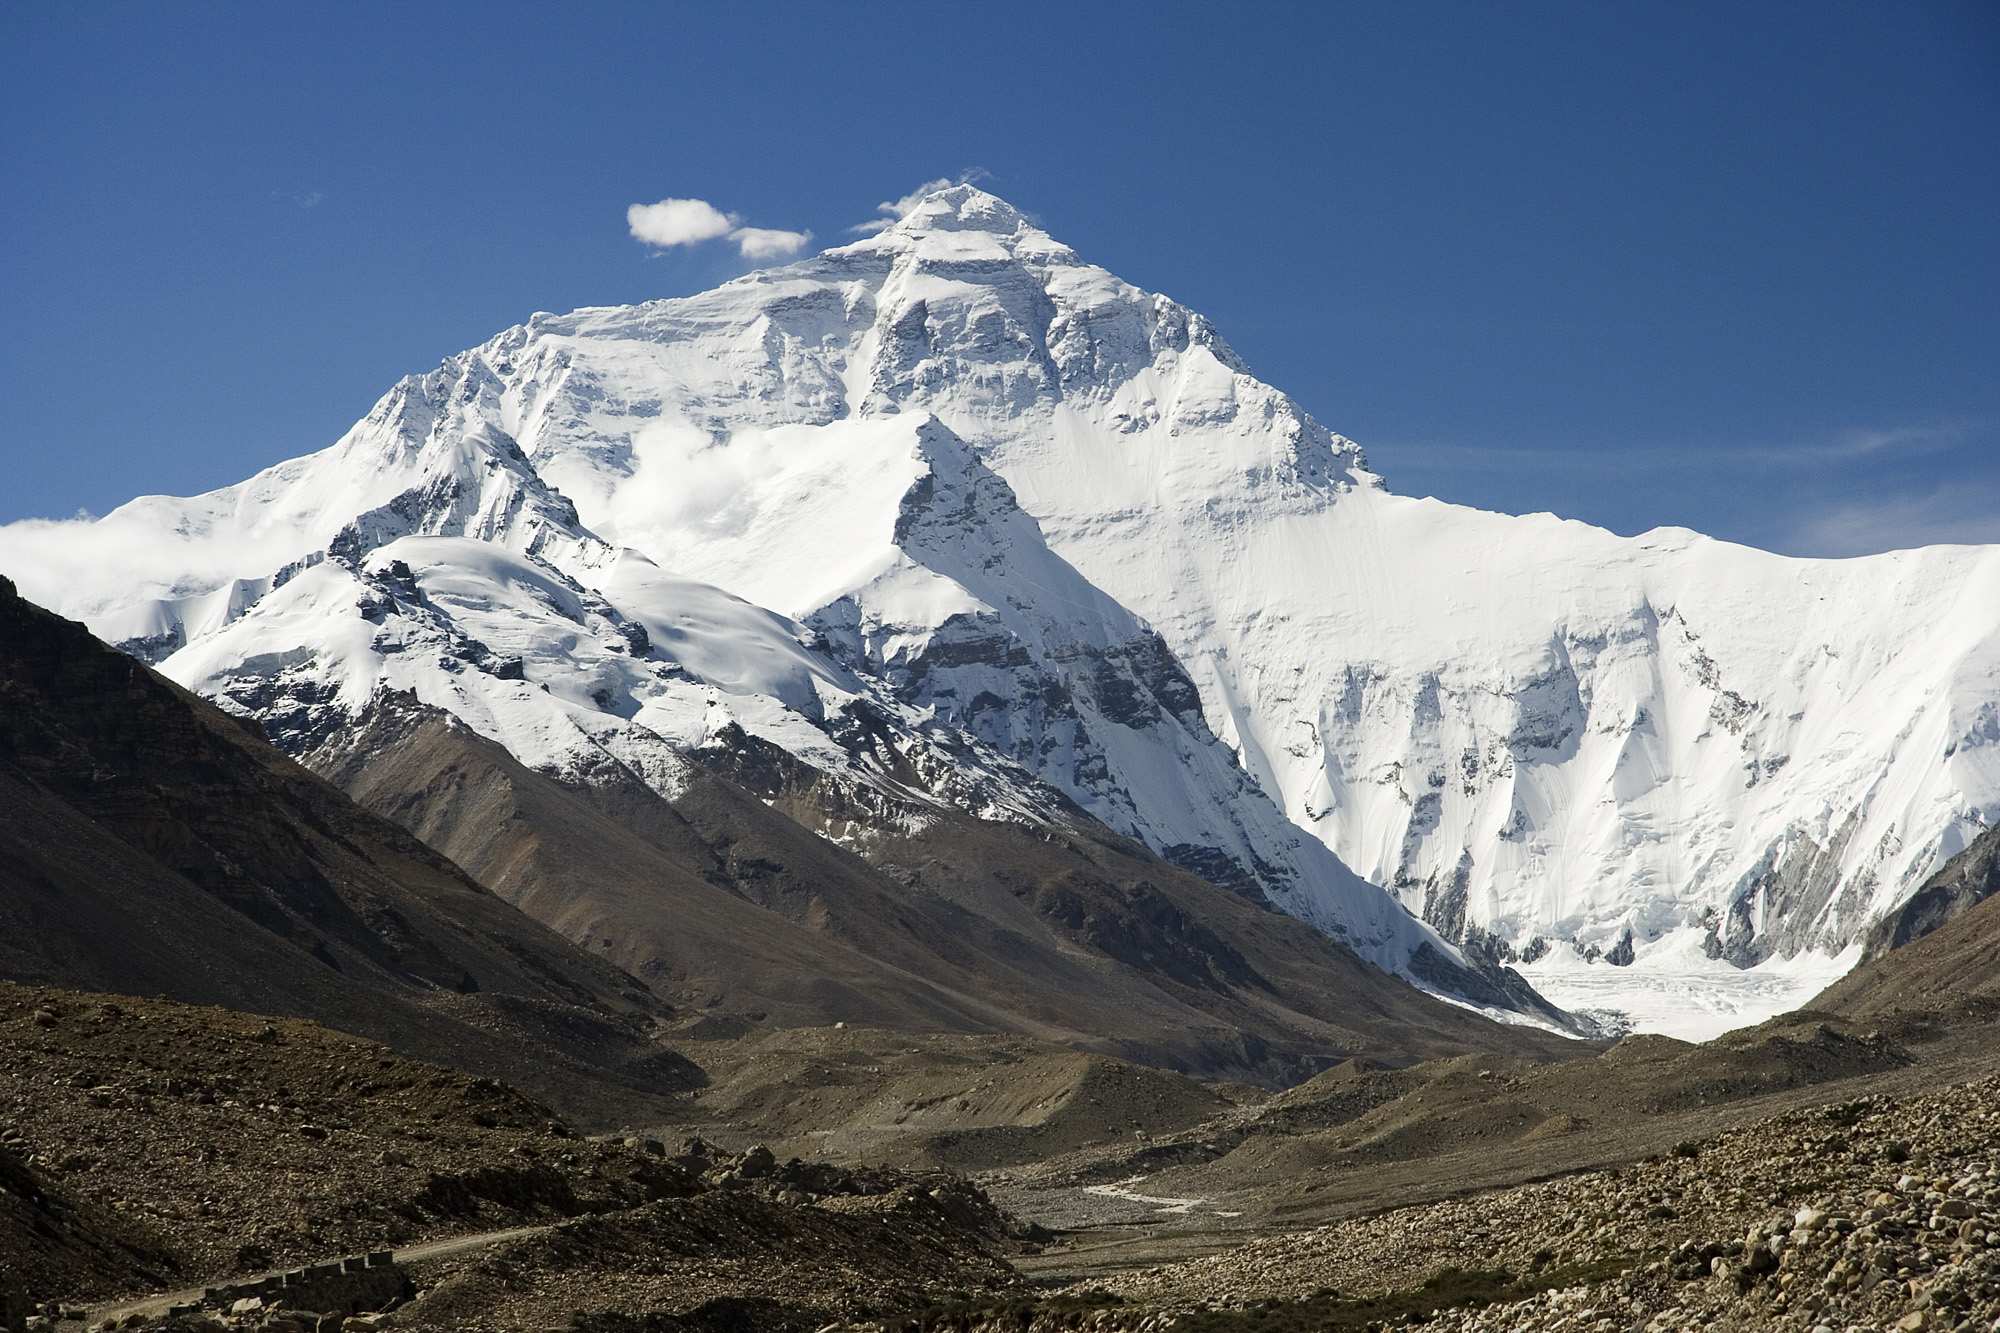 https://i0.wp.com/upload.wikimedia.org/wikipedia/commons/e/e7/Everest_North_Face_toward_Base_Camp_Tibet_Luca_Galuzzi_2006.jpg